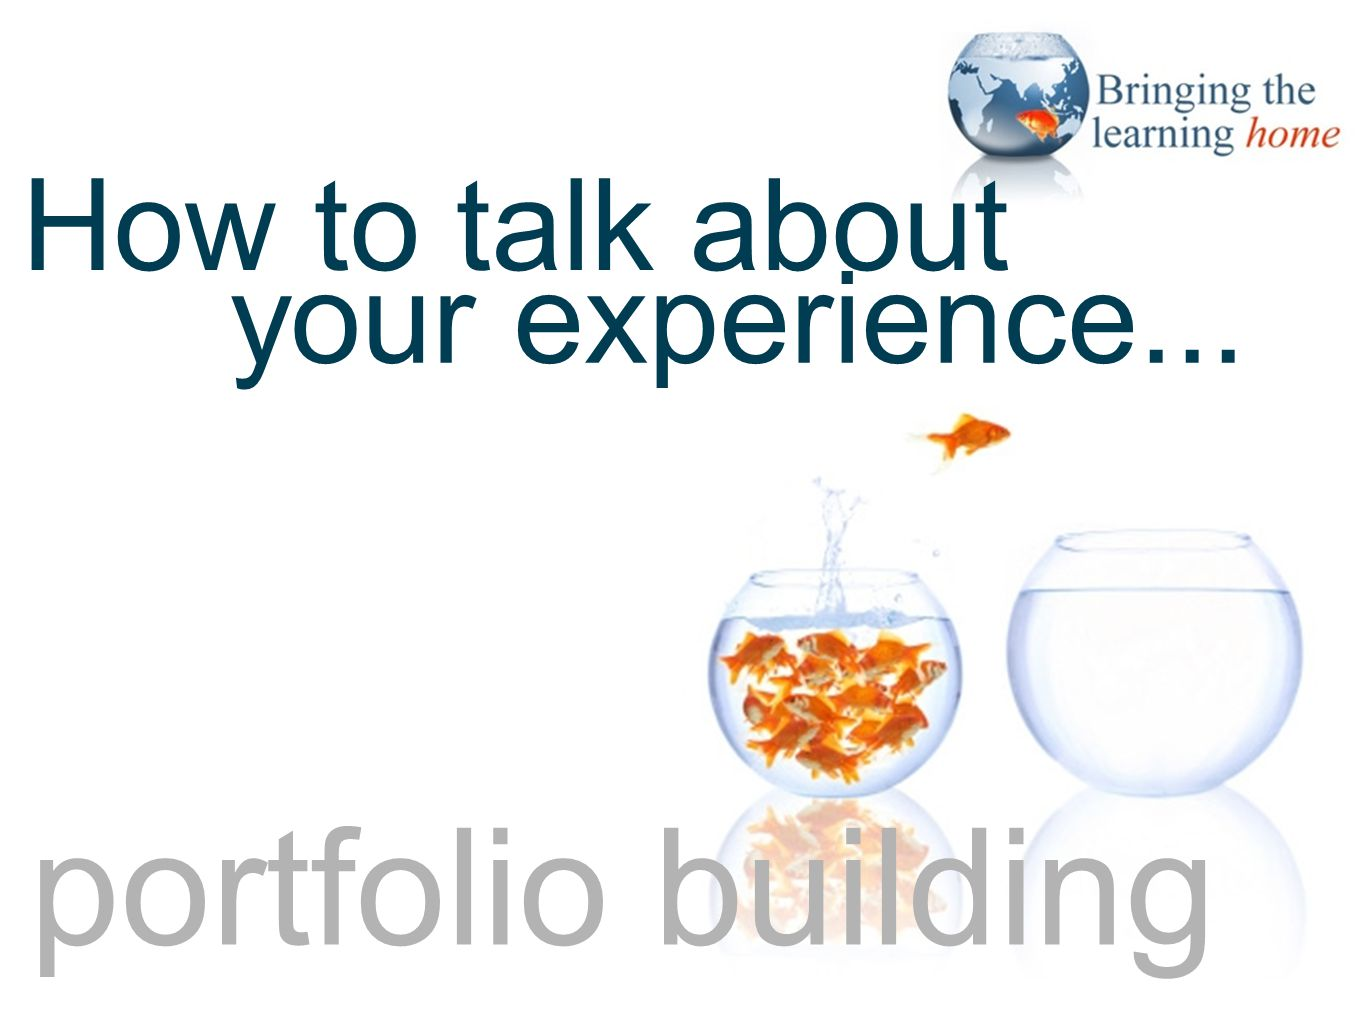 portfolio building your experience... How to talk about